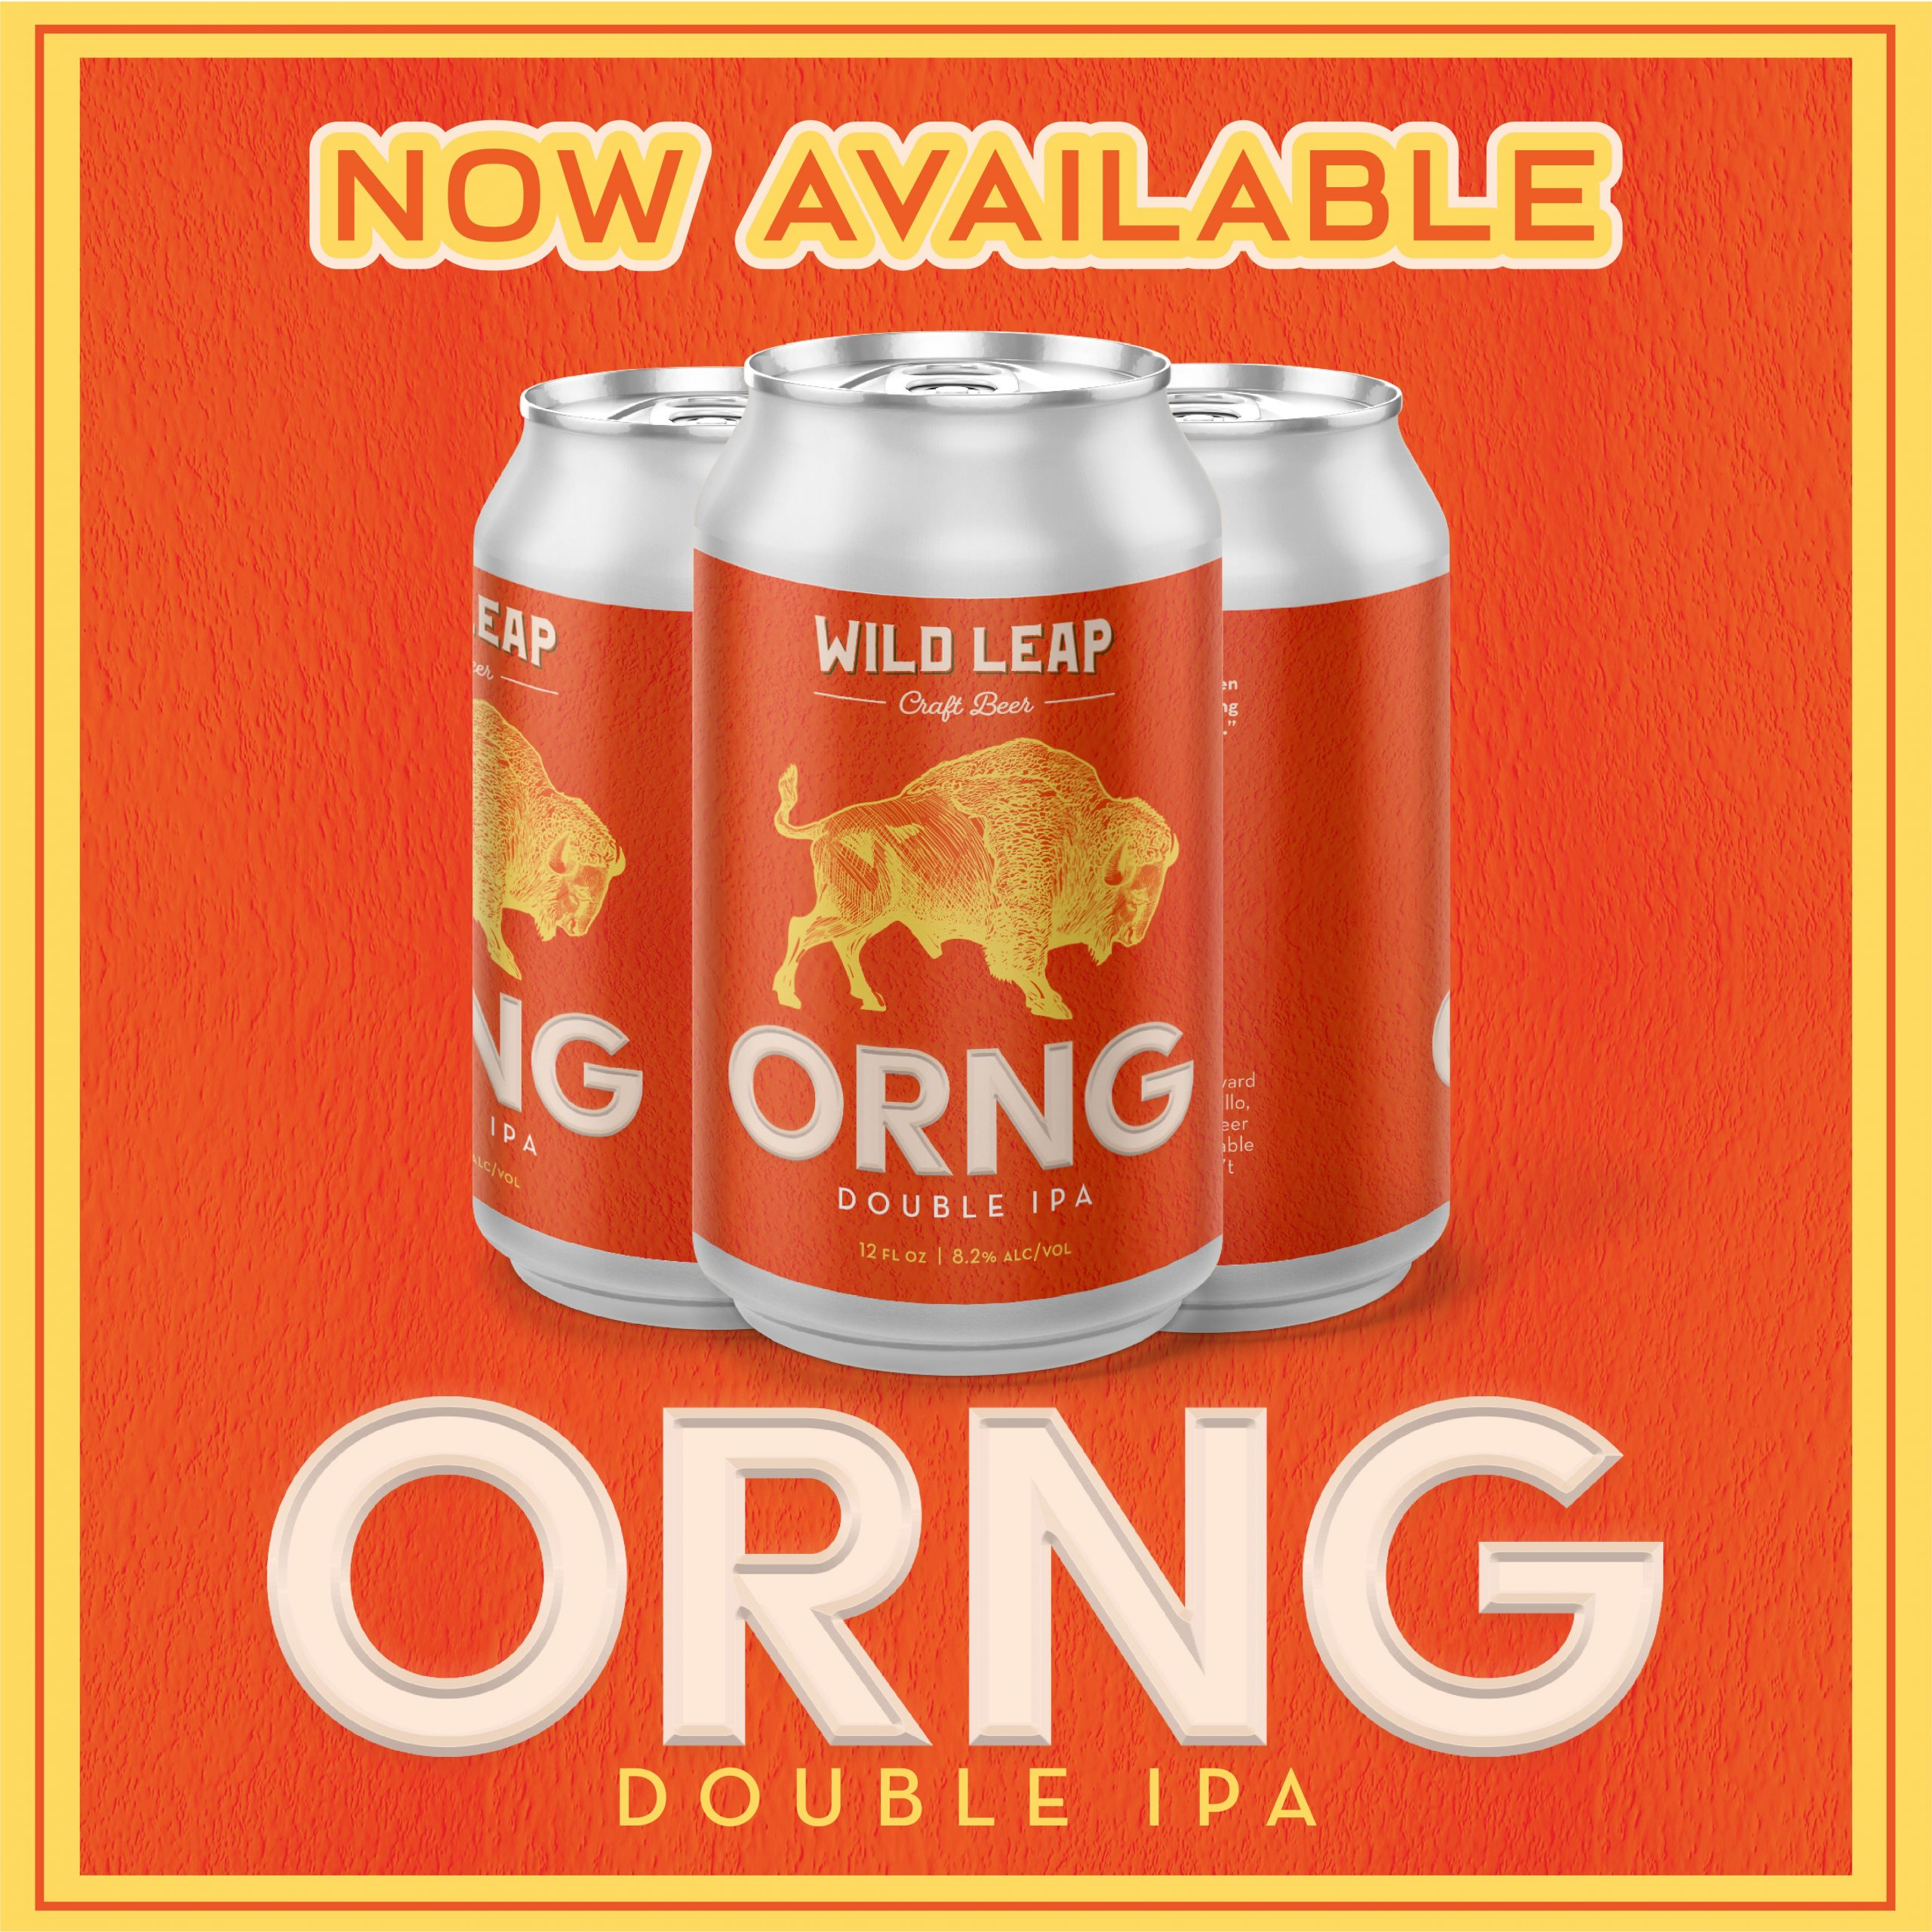 ORNG Double IPA Wild Leap